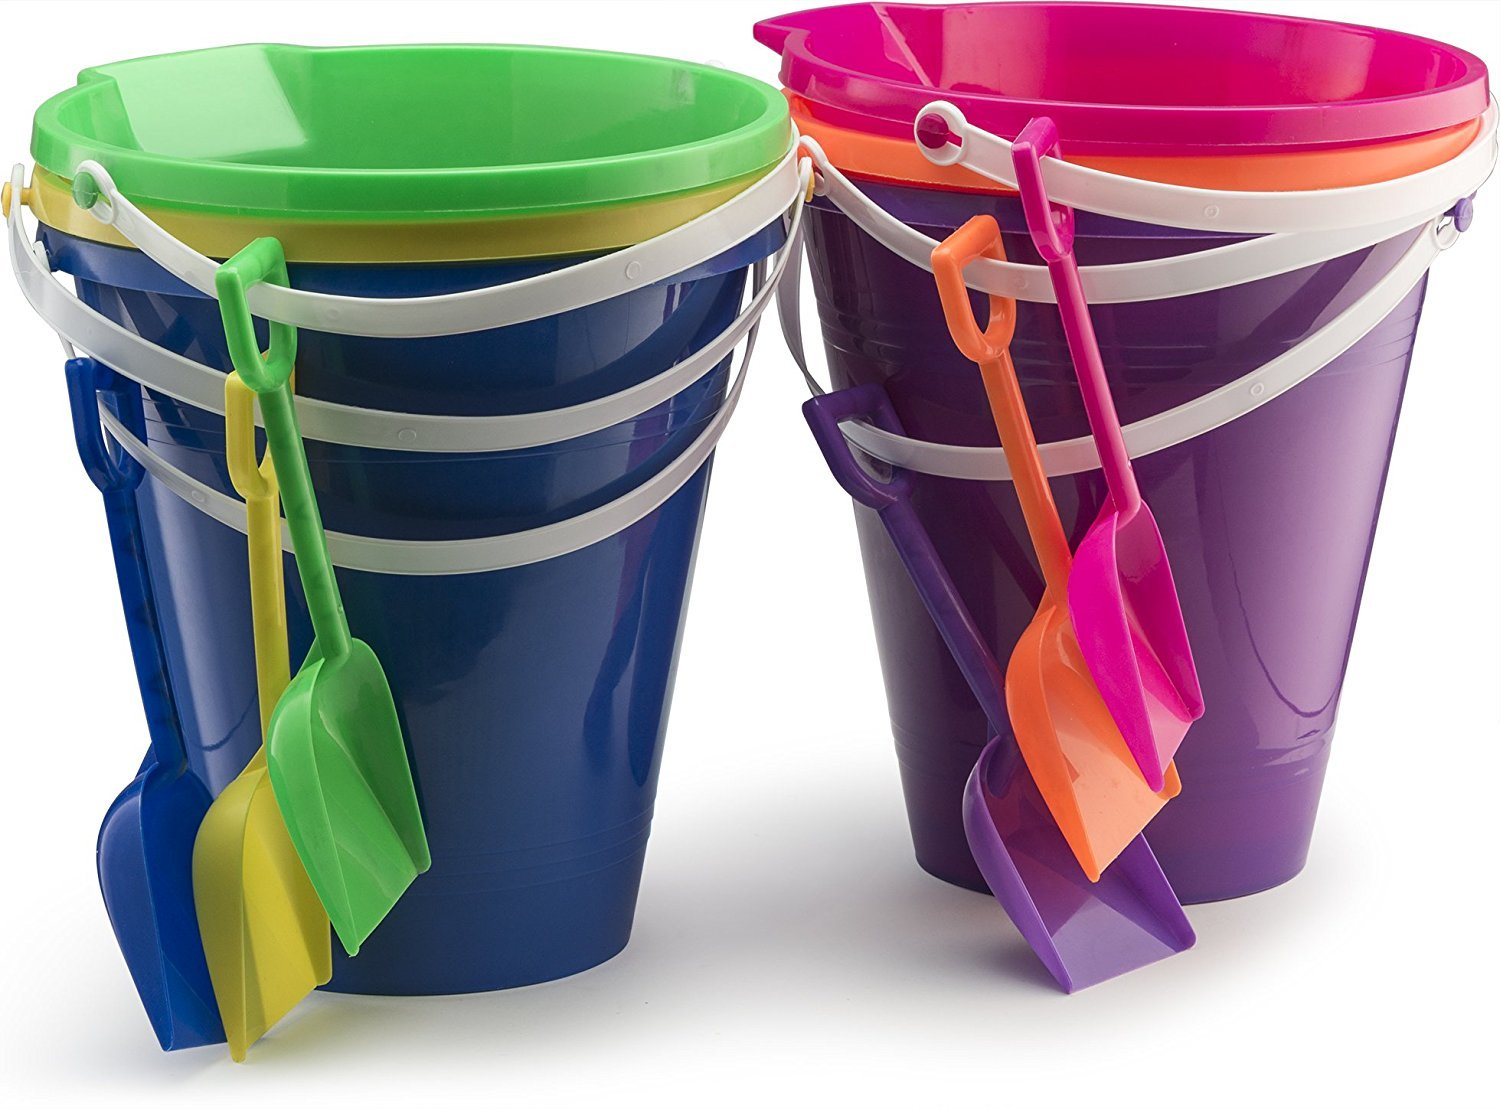 ''Assorted 9'''' Sand Bucket Set With Shovel BEACH TOY [2274881]''